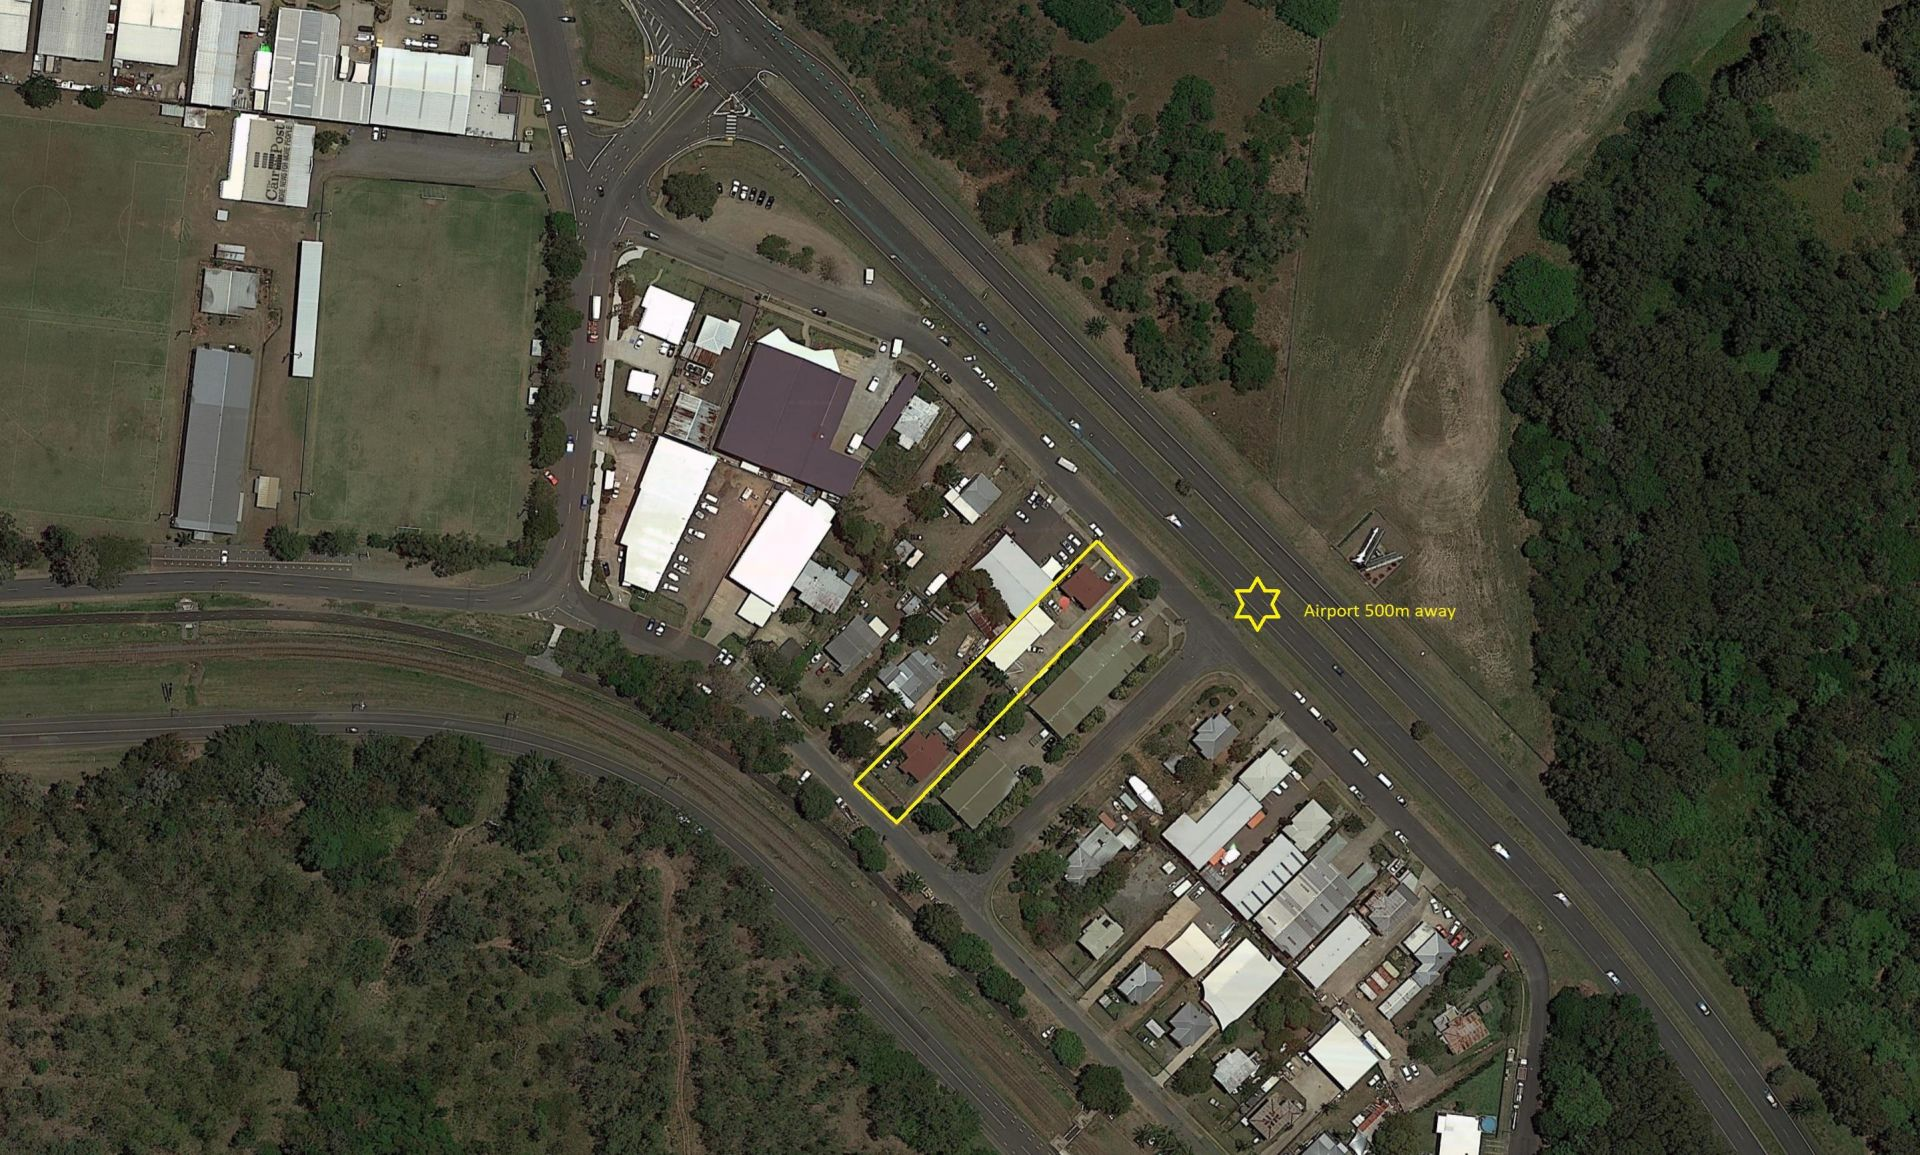 HUGE DEVELOPMENT OPPORTUNITY. CAPTAIN COOK HIGHWAY EXPOSURE RIGHT NEAR AIRPORT